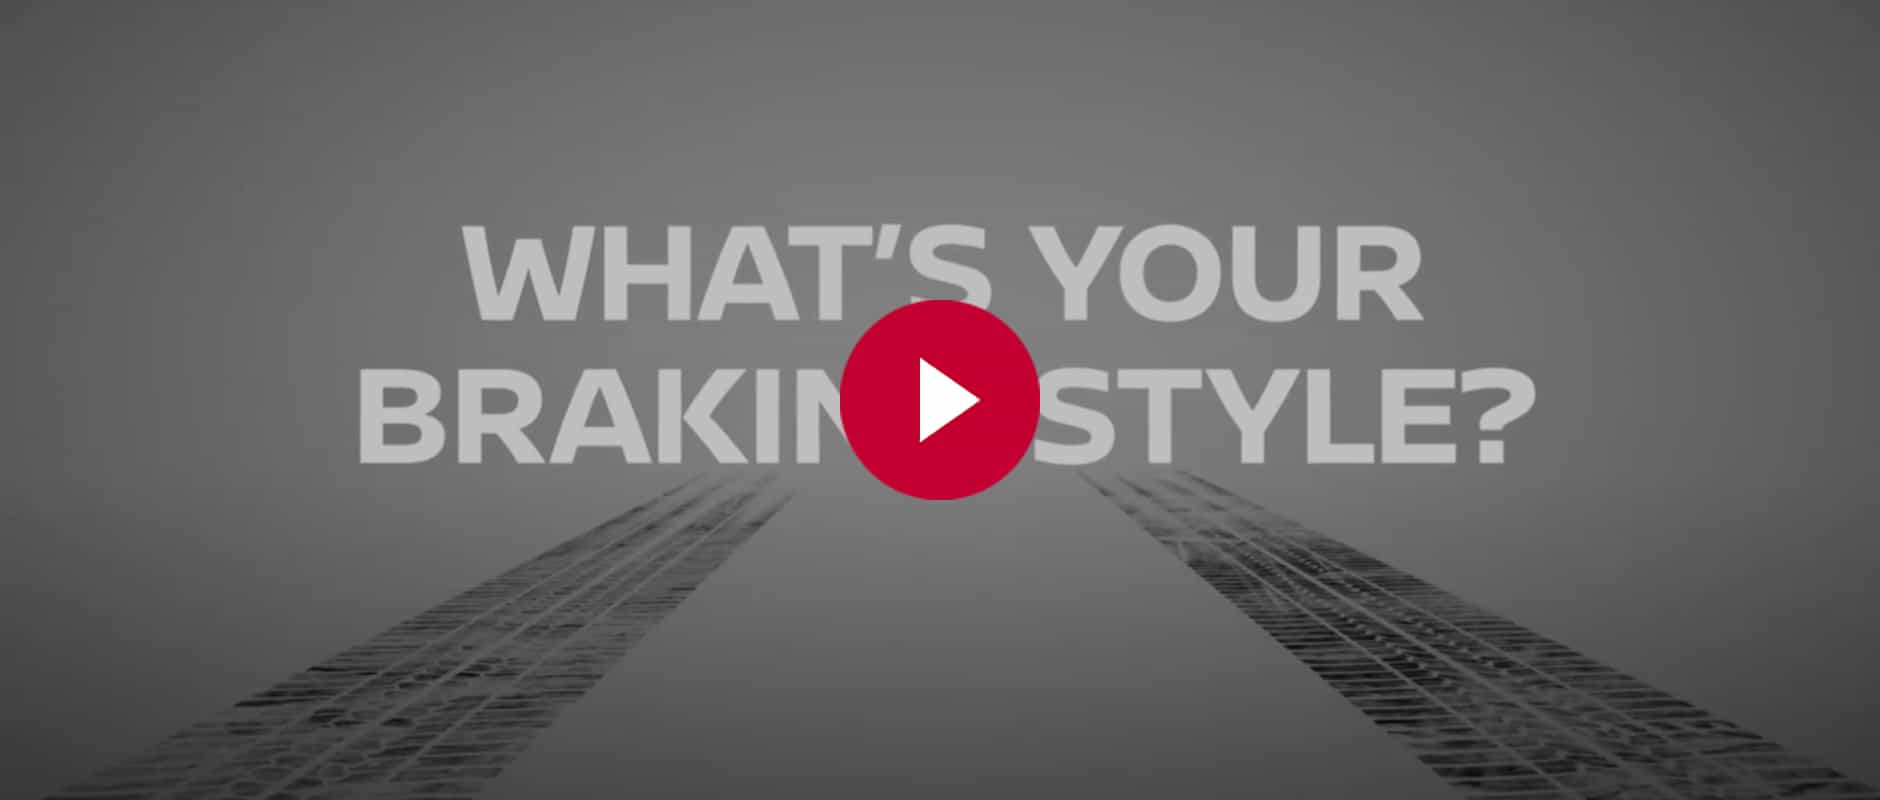 Video Thumbnail: What's your Braking Style?